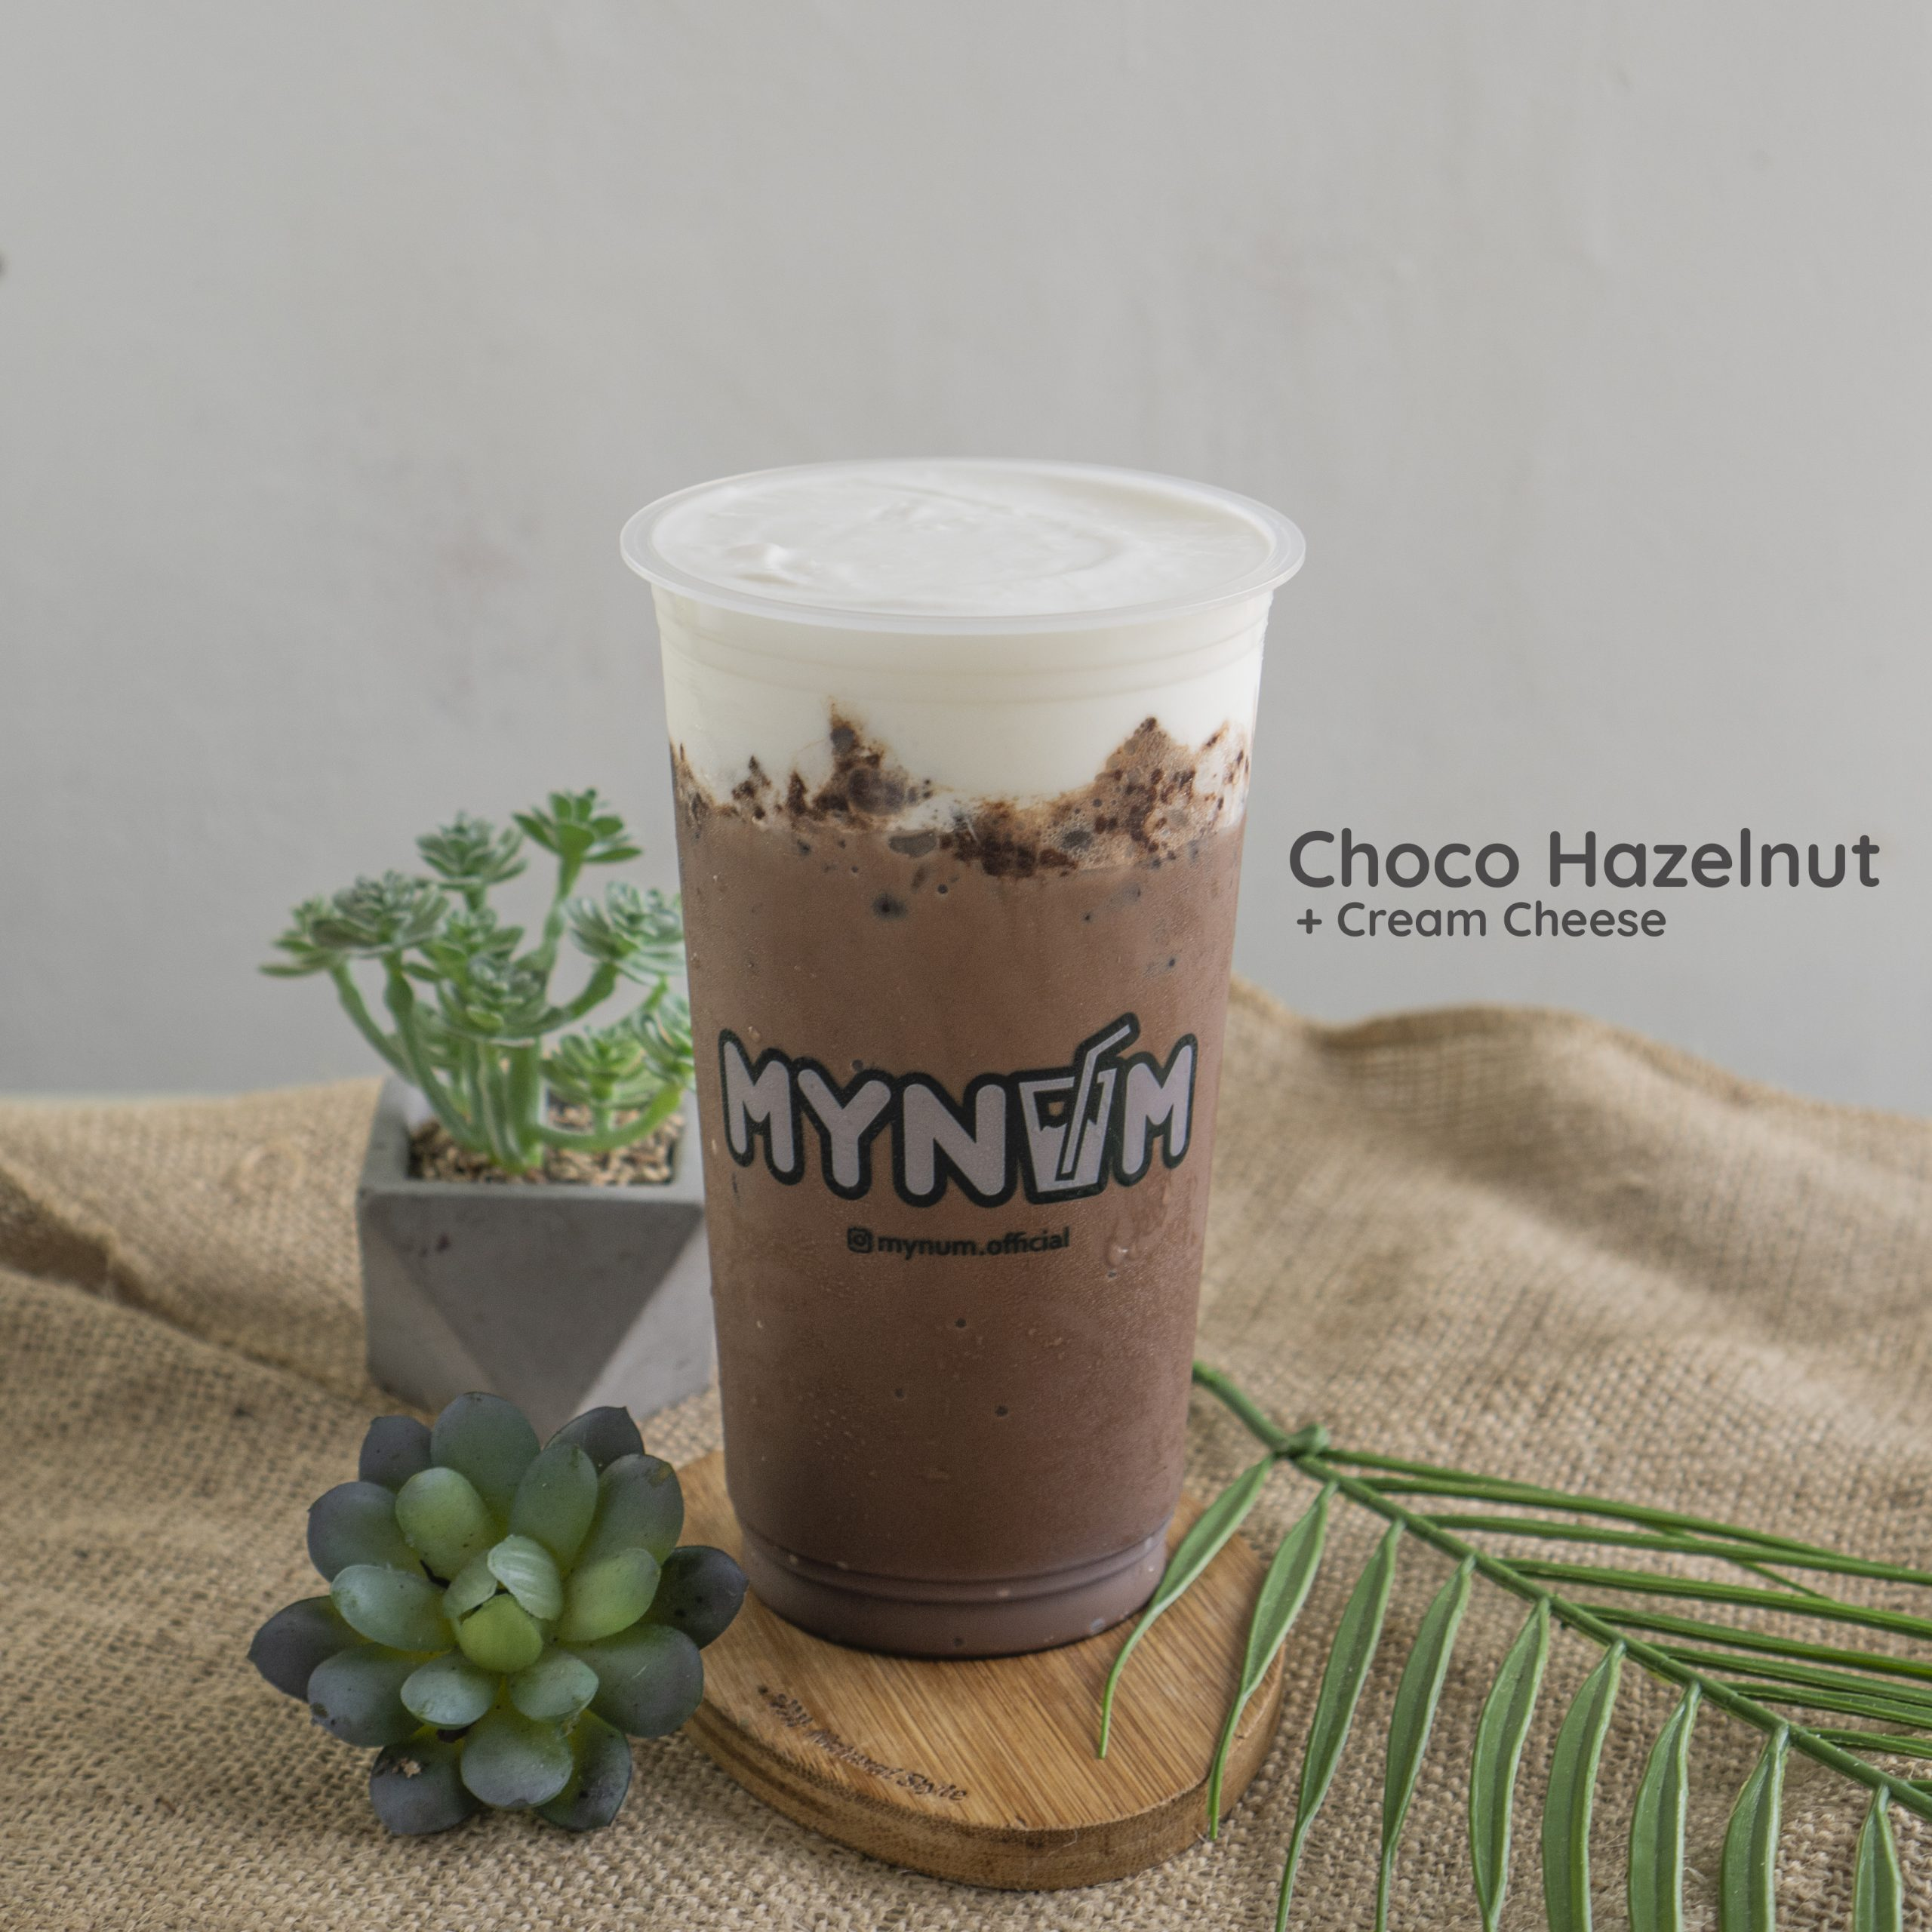 11. Choco Hazelnut Cream Cheese